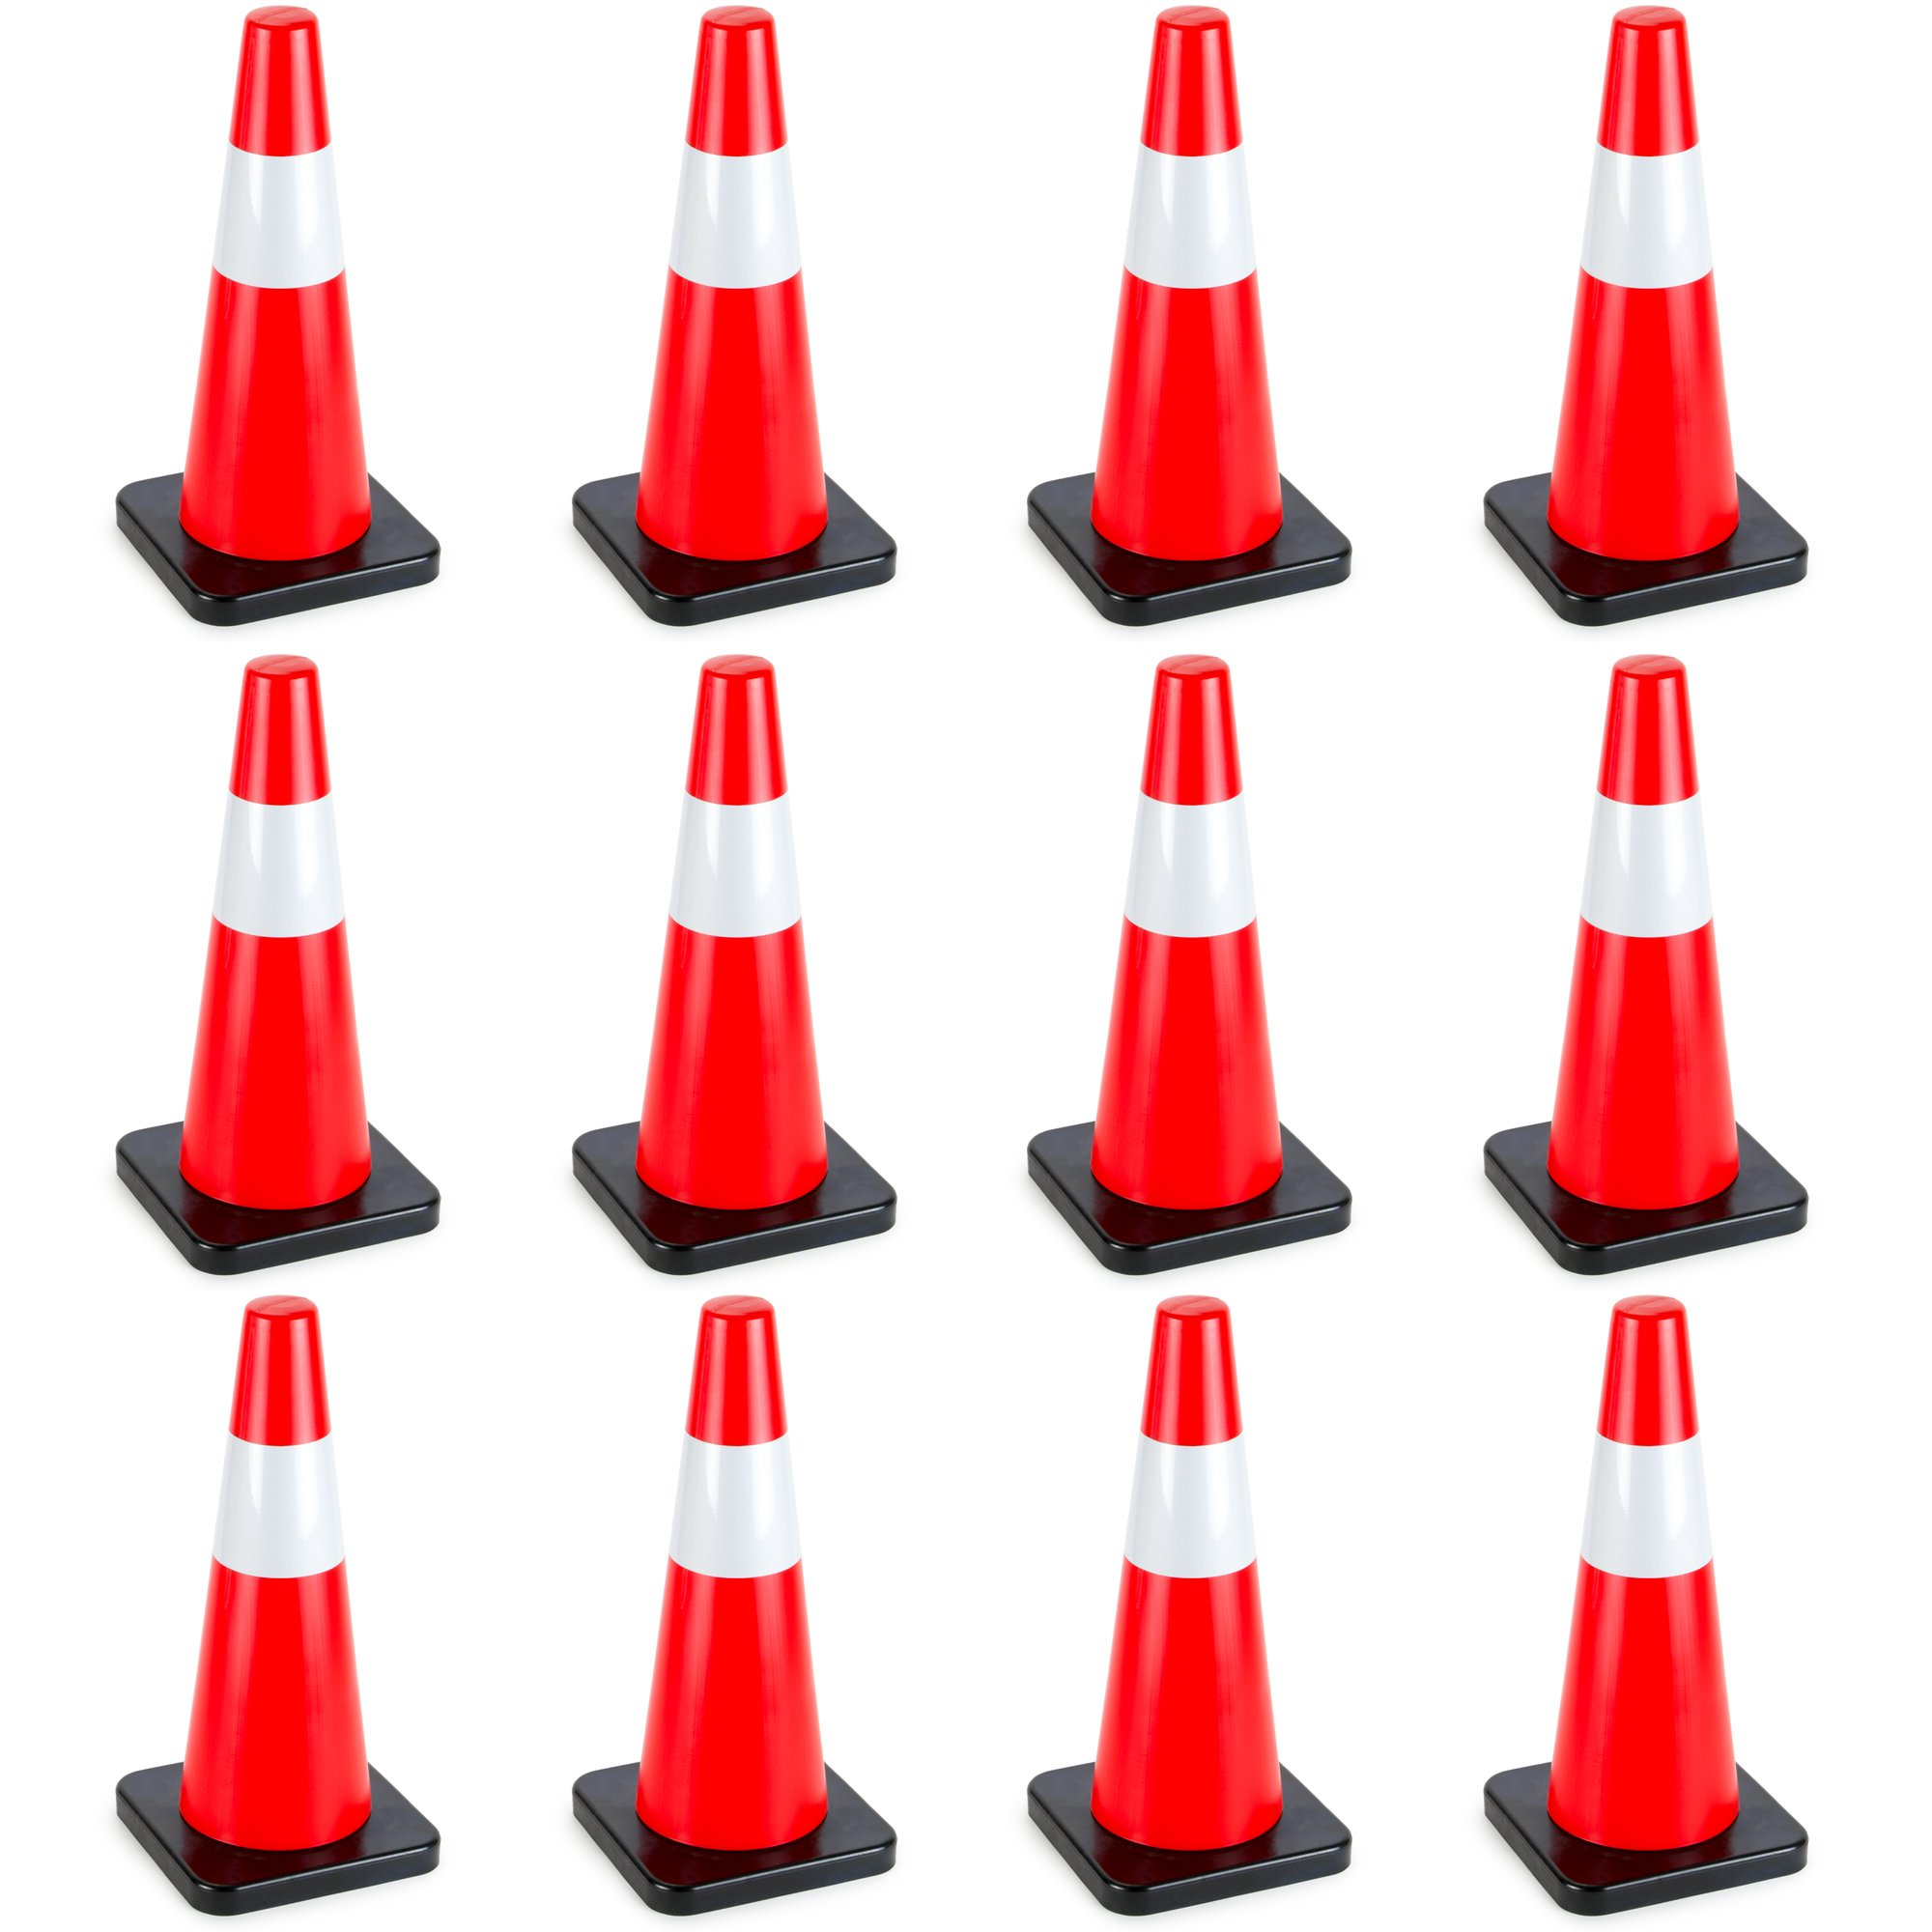 18'' High Hat Cones in Fluorescent Orange with Reflective Sleeve and Black Base for Indoor/Outdoor Traffic Work Area Safety Marker & Agility Sport Training by Bolthead Industrial (12-pack)